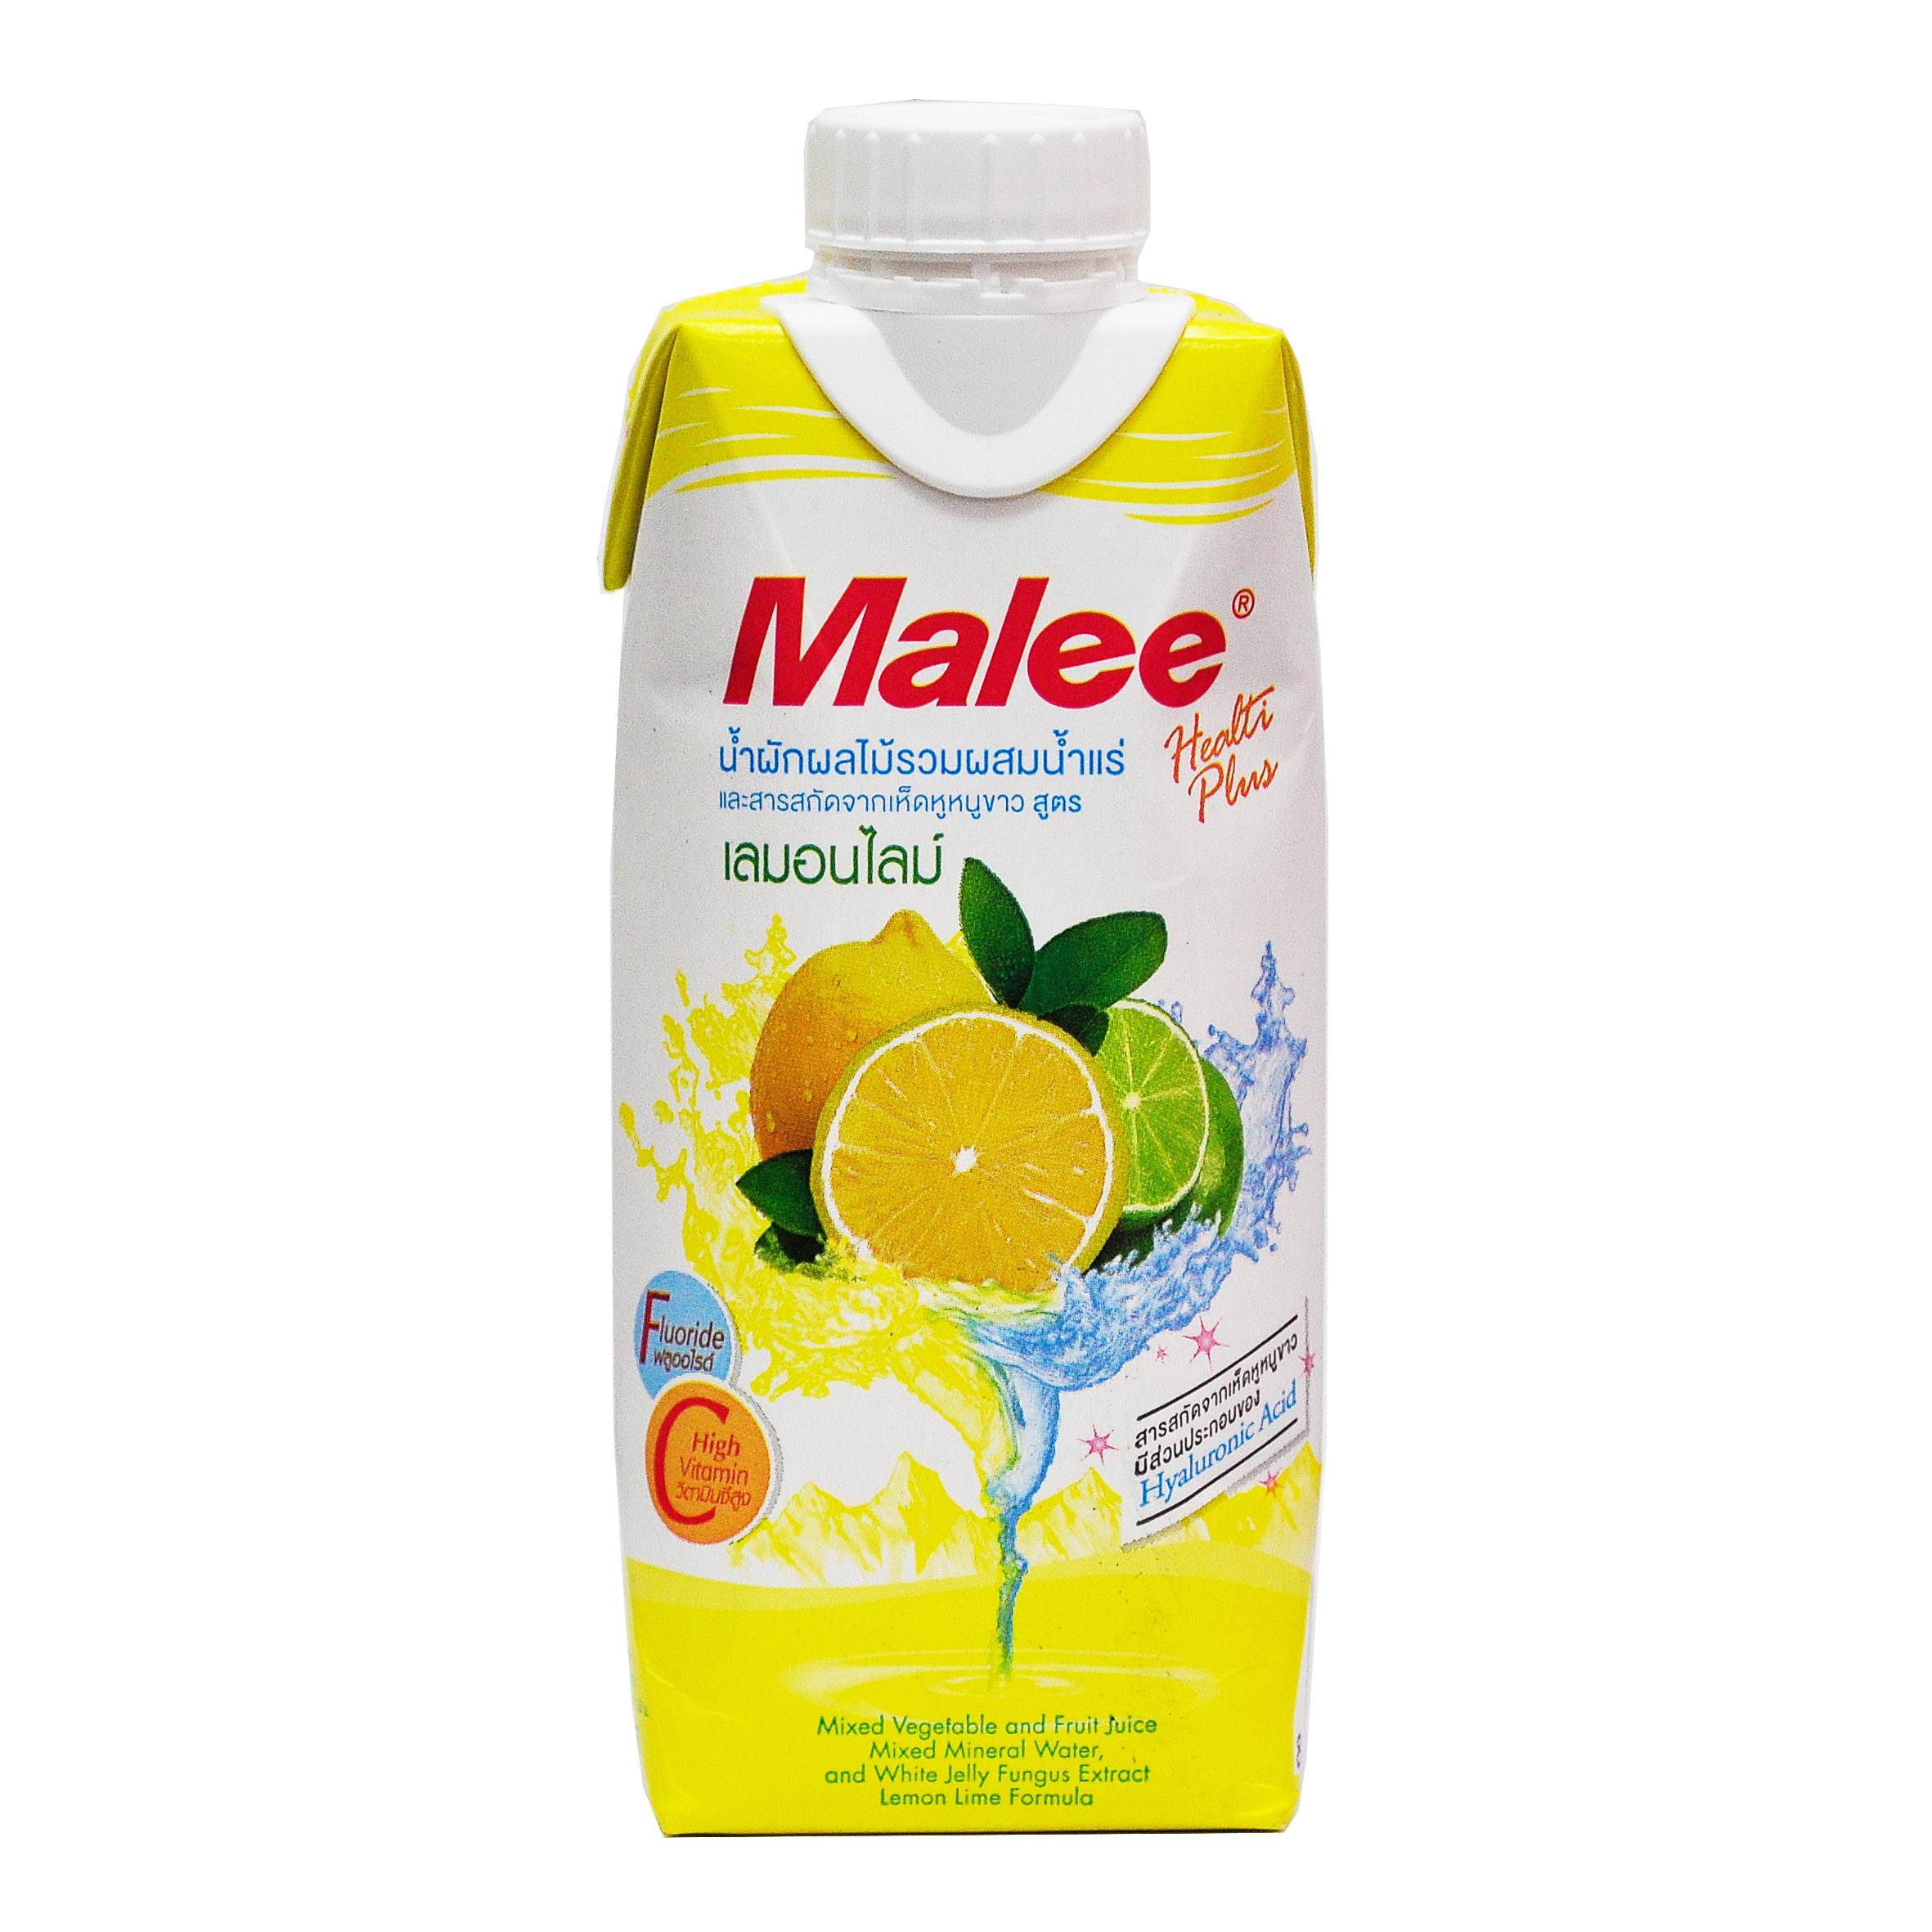 Malee White Jelly Fungus Extract Lemon Lime Back Side.jpg